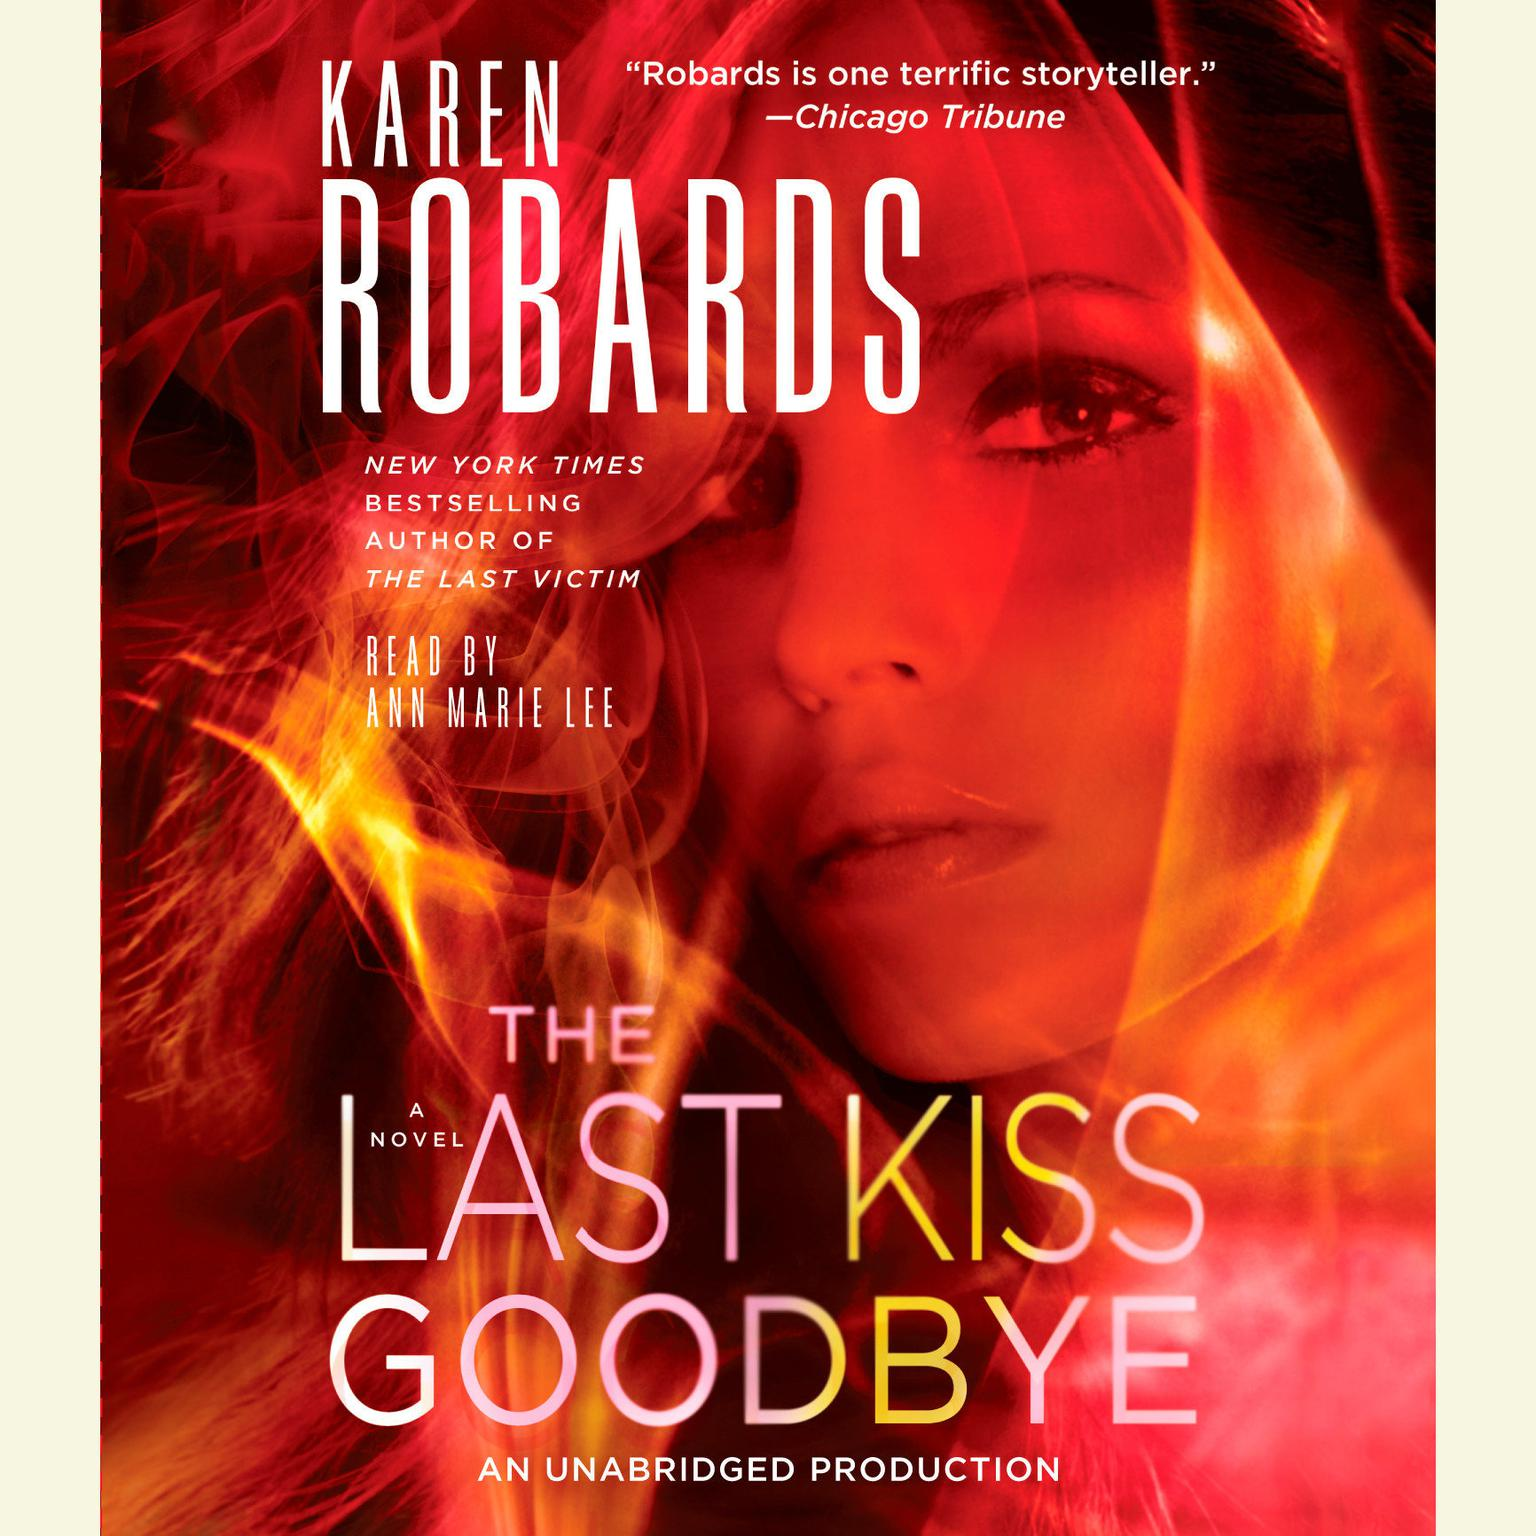 Printable The Last Kiss Goodbye: A Novel Audiobook Cover Art